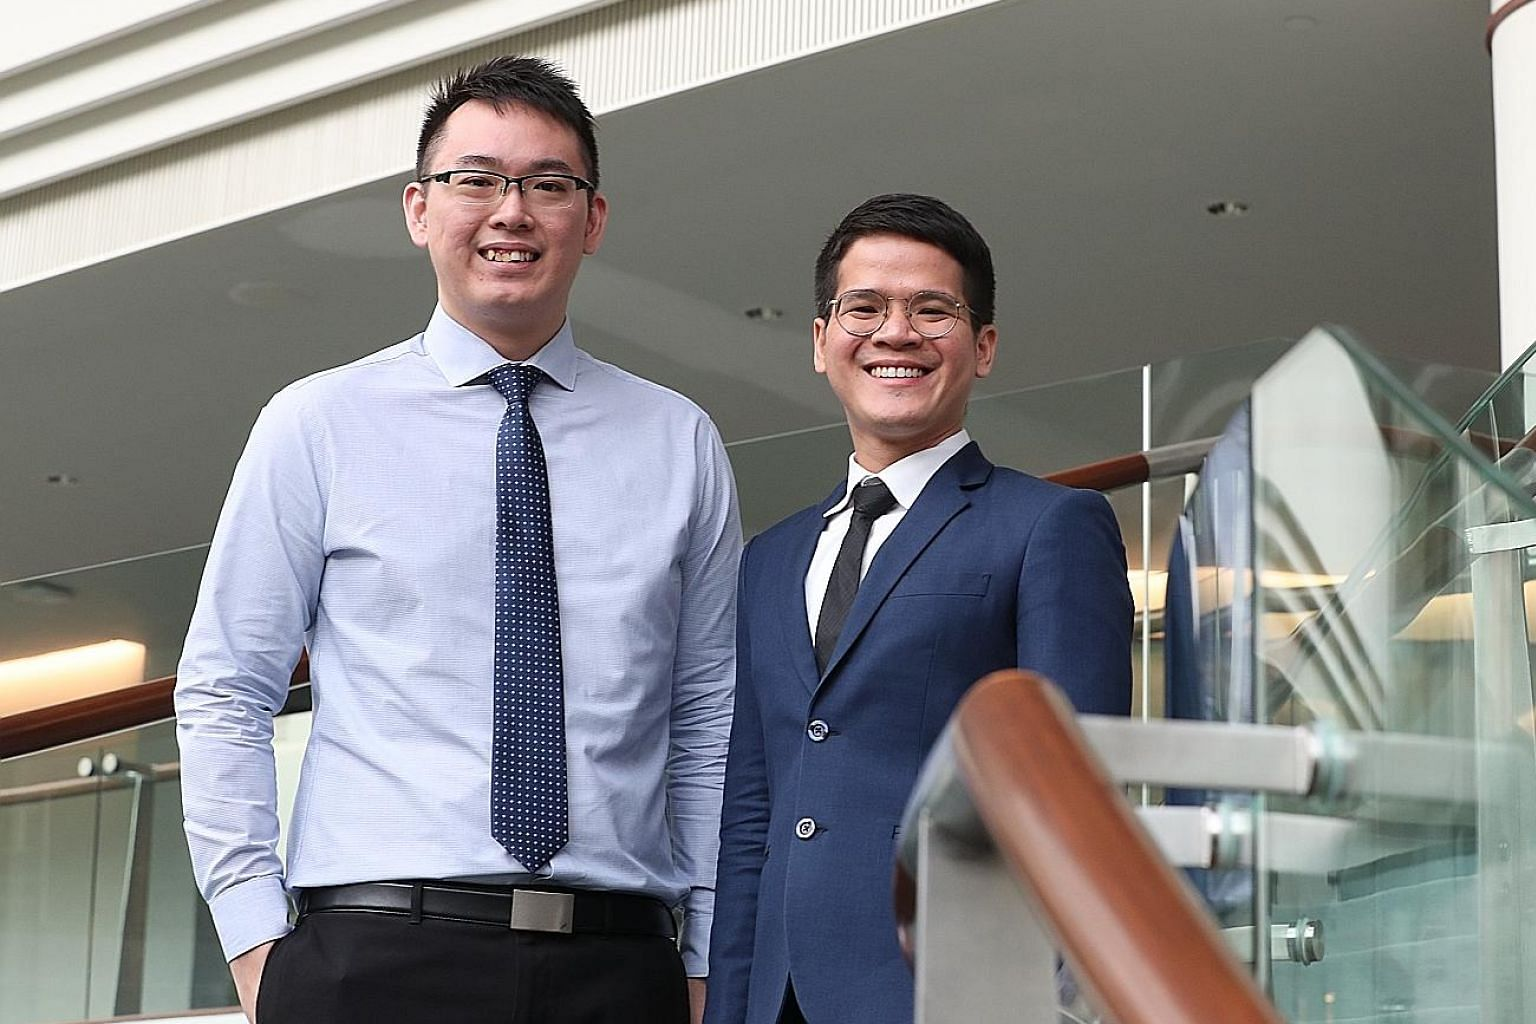 Tan Tock Seng Hospital patient service executive Johnsten Wee (far left) and DBS Bank wealth planning manager Wai Chee Man were among the six recipients of the inaugural Model Worker award.